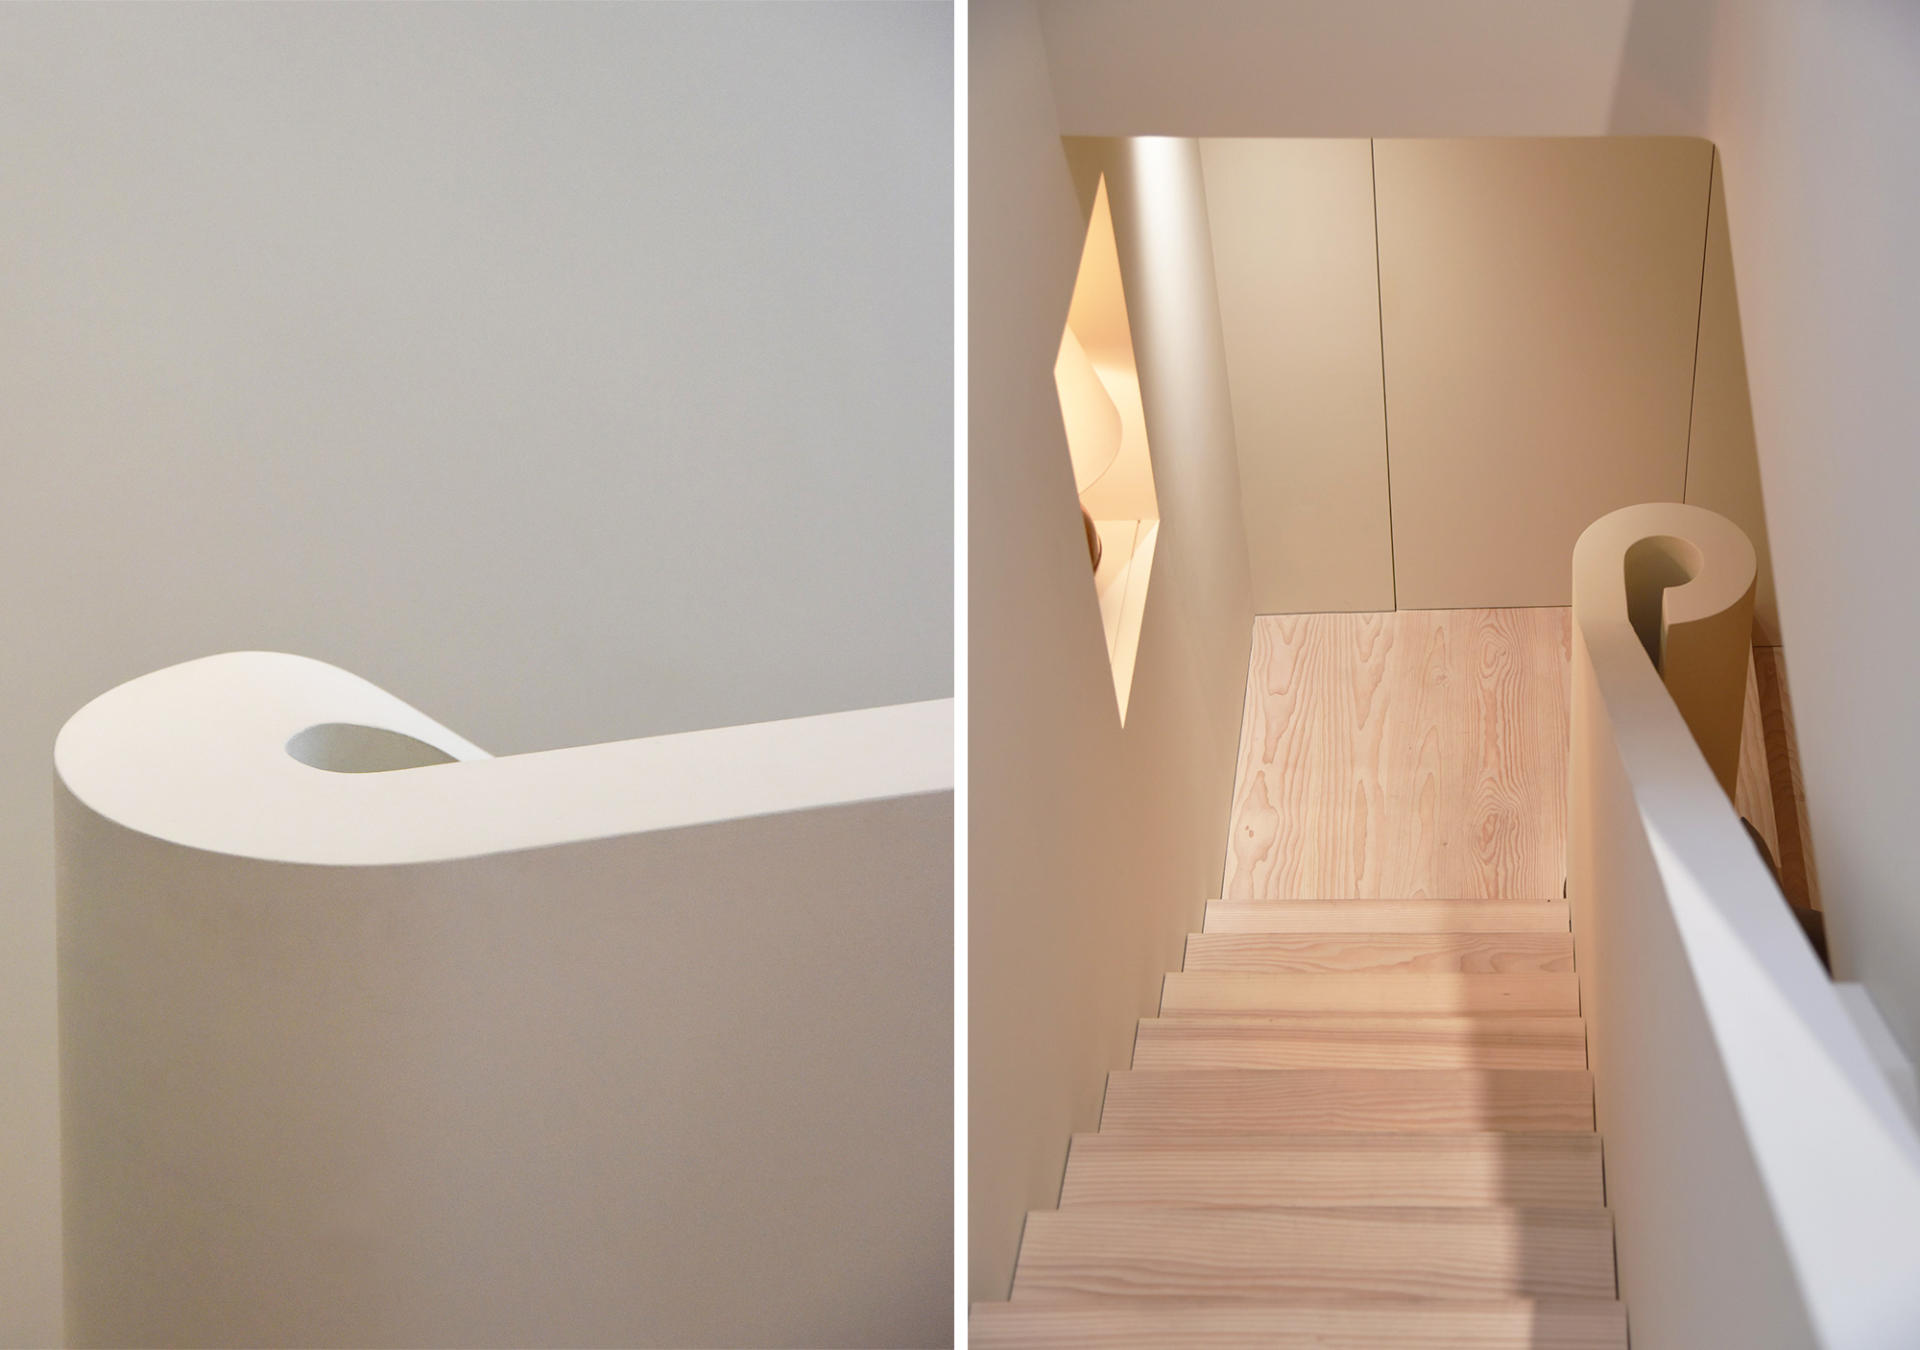 Collier Webb Showroom Staircase design by West Architecture